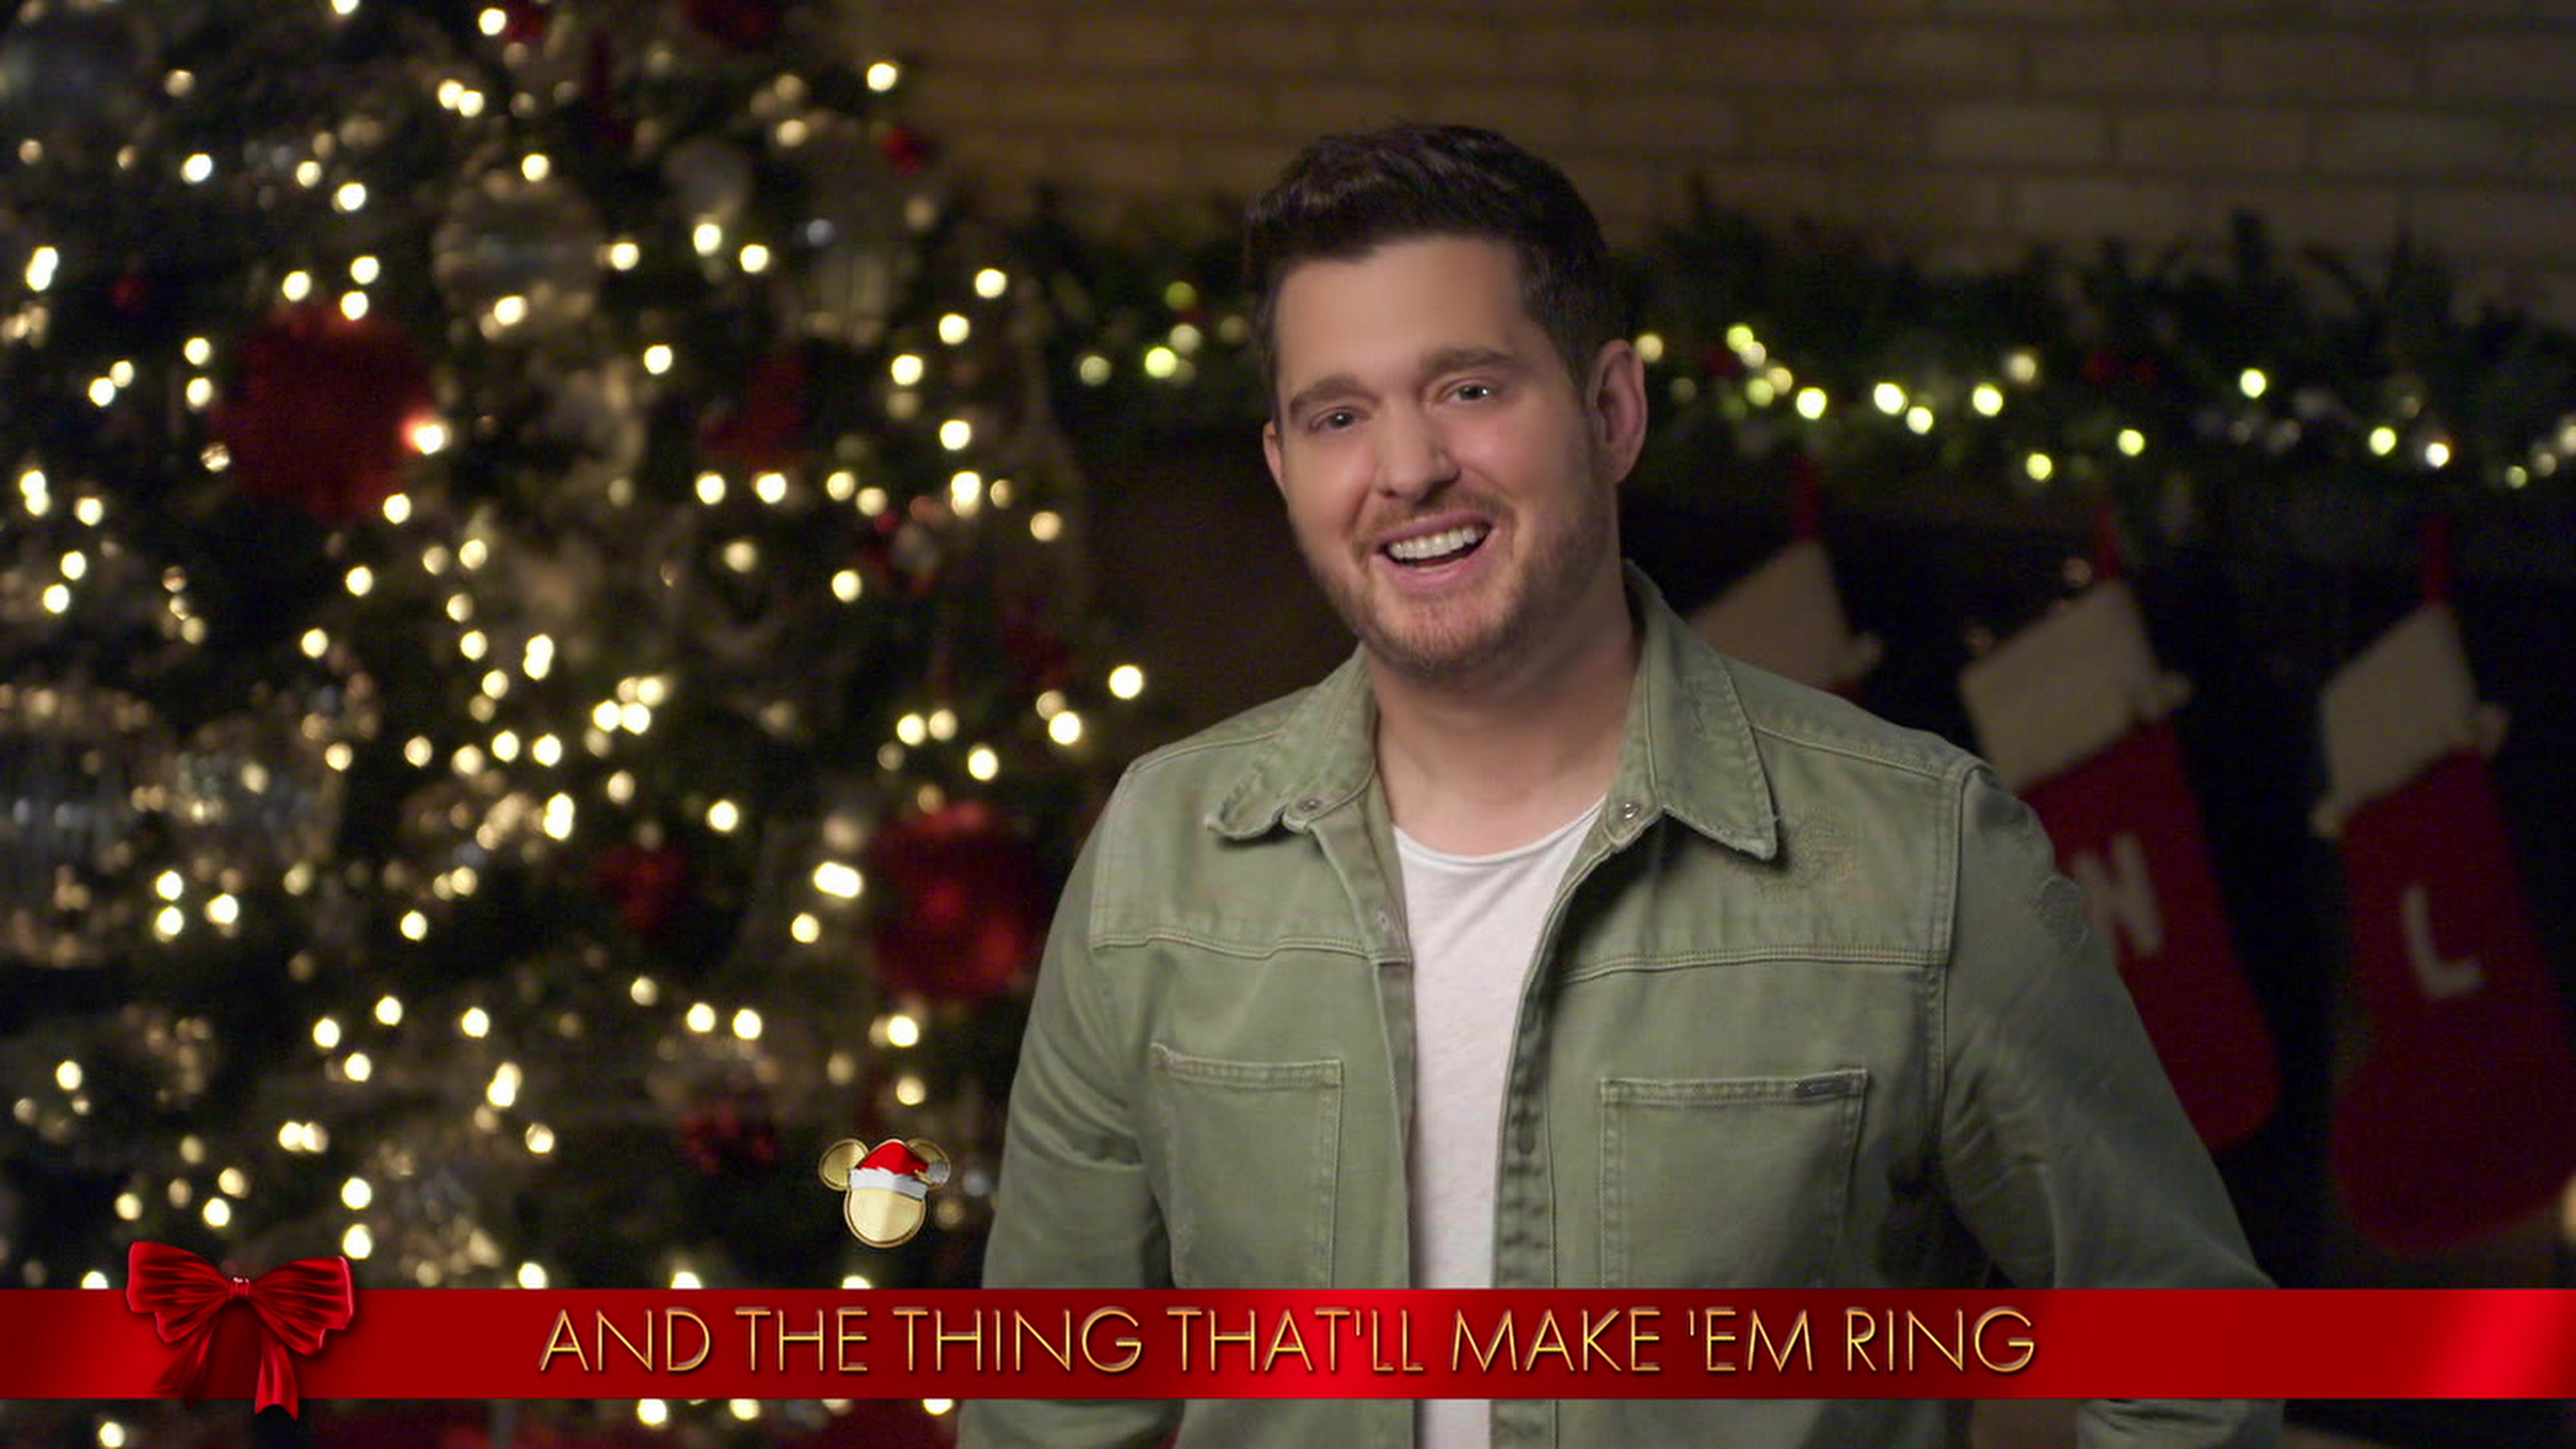 Michael Bublé Joined By Wife Luisana And Kids For Adorable 'Disney Holiday Singalong' Performance